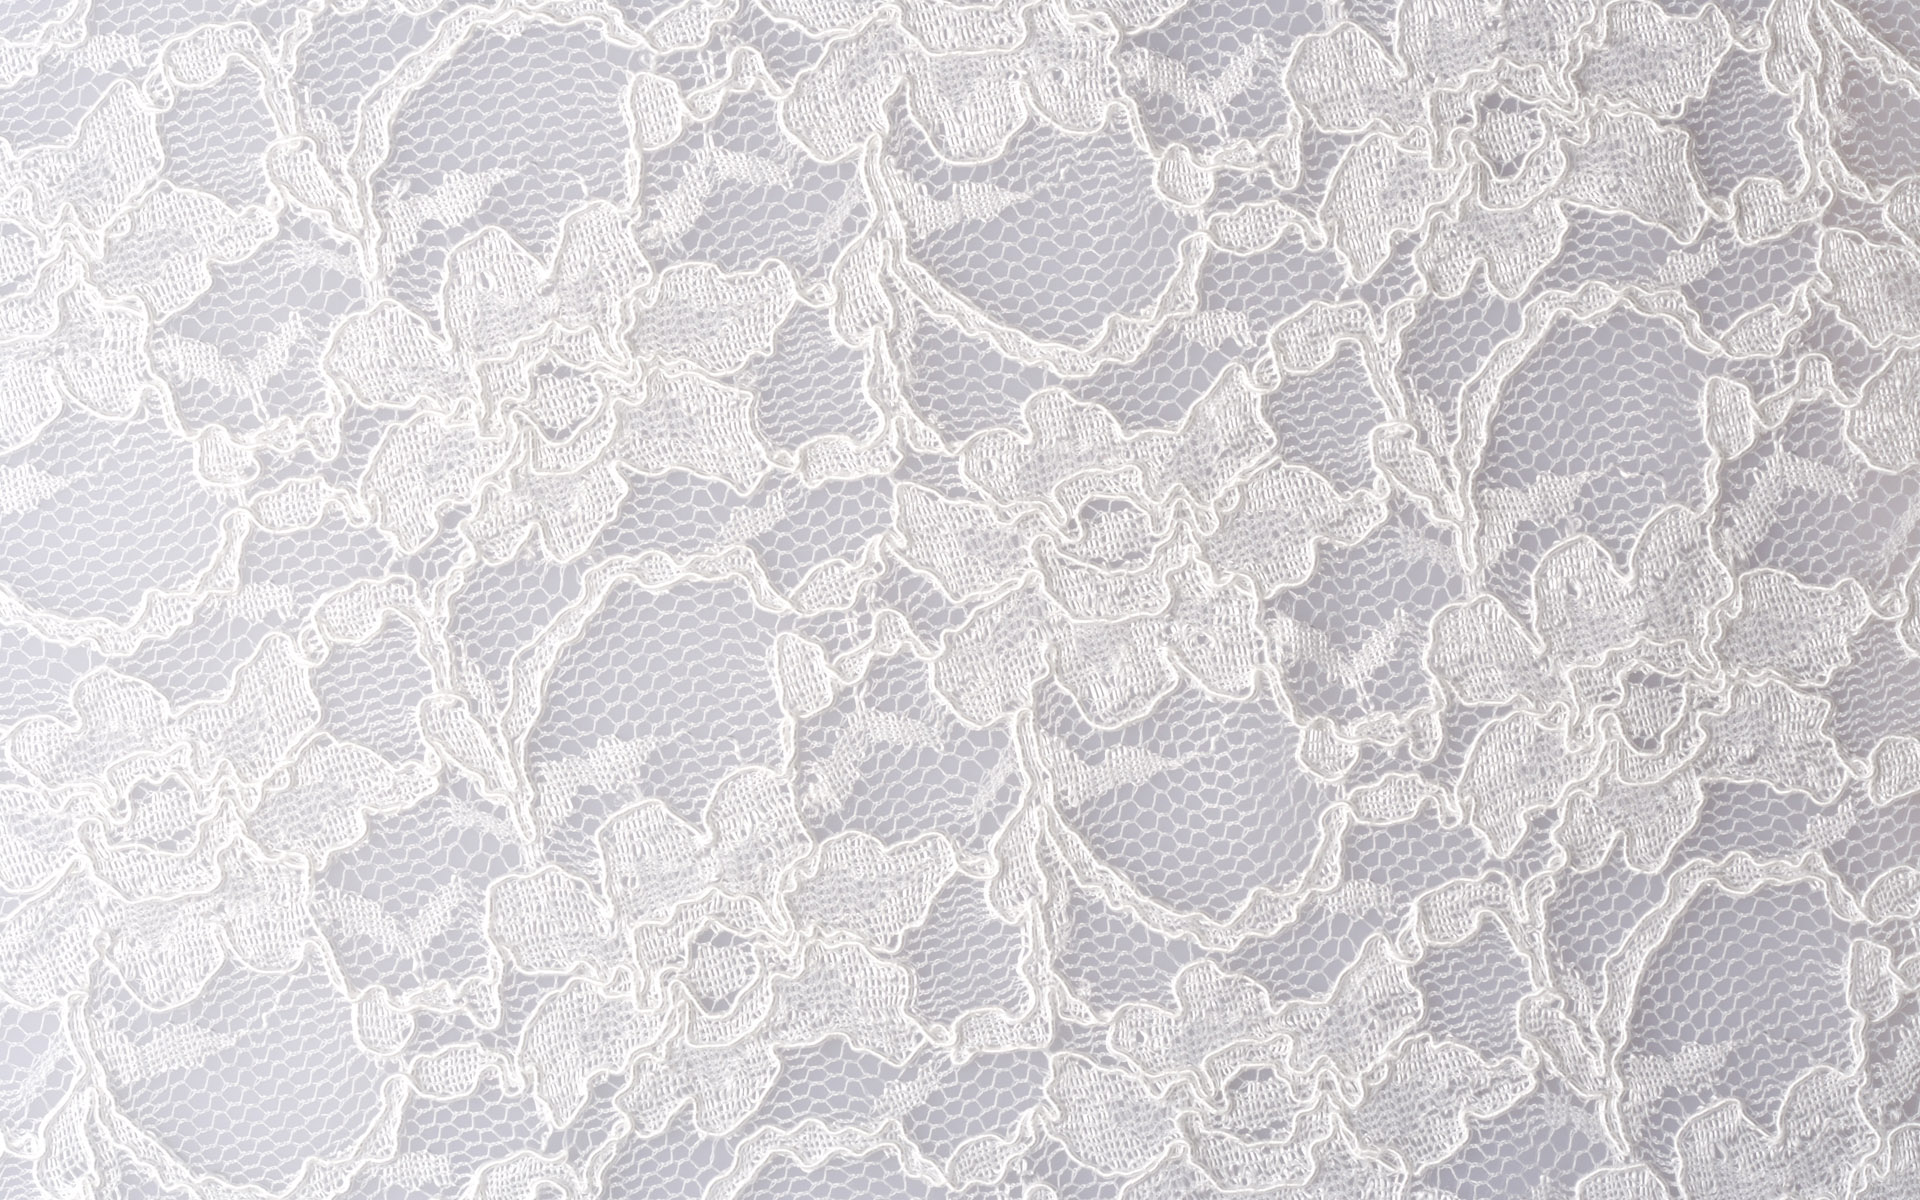 white lace tumblr backgrounds - photo #4